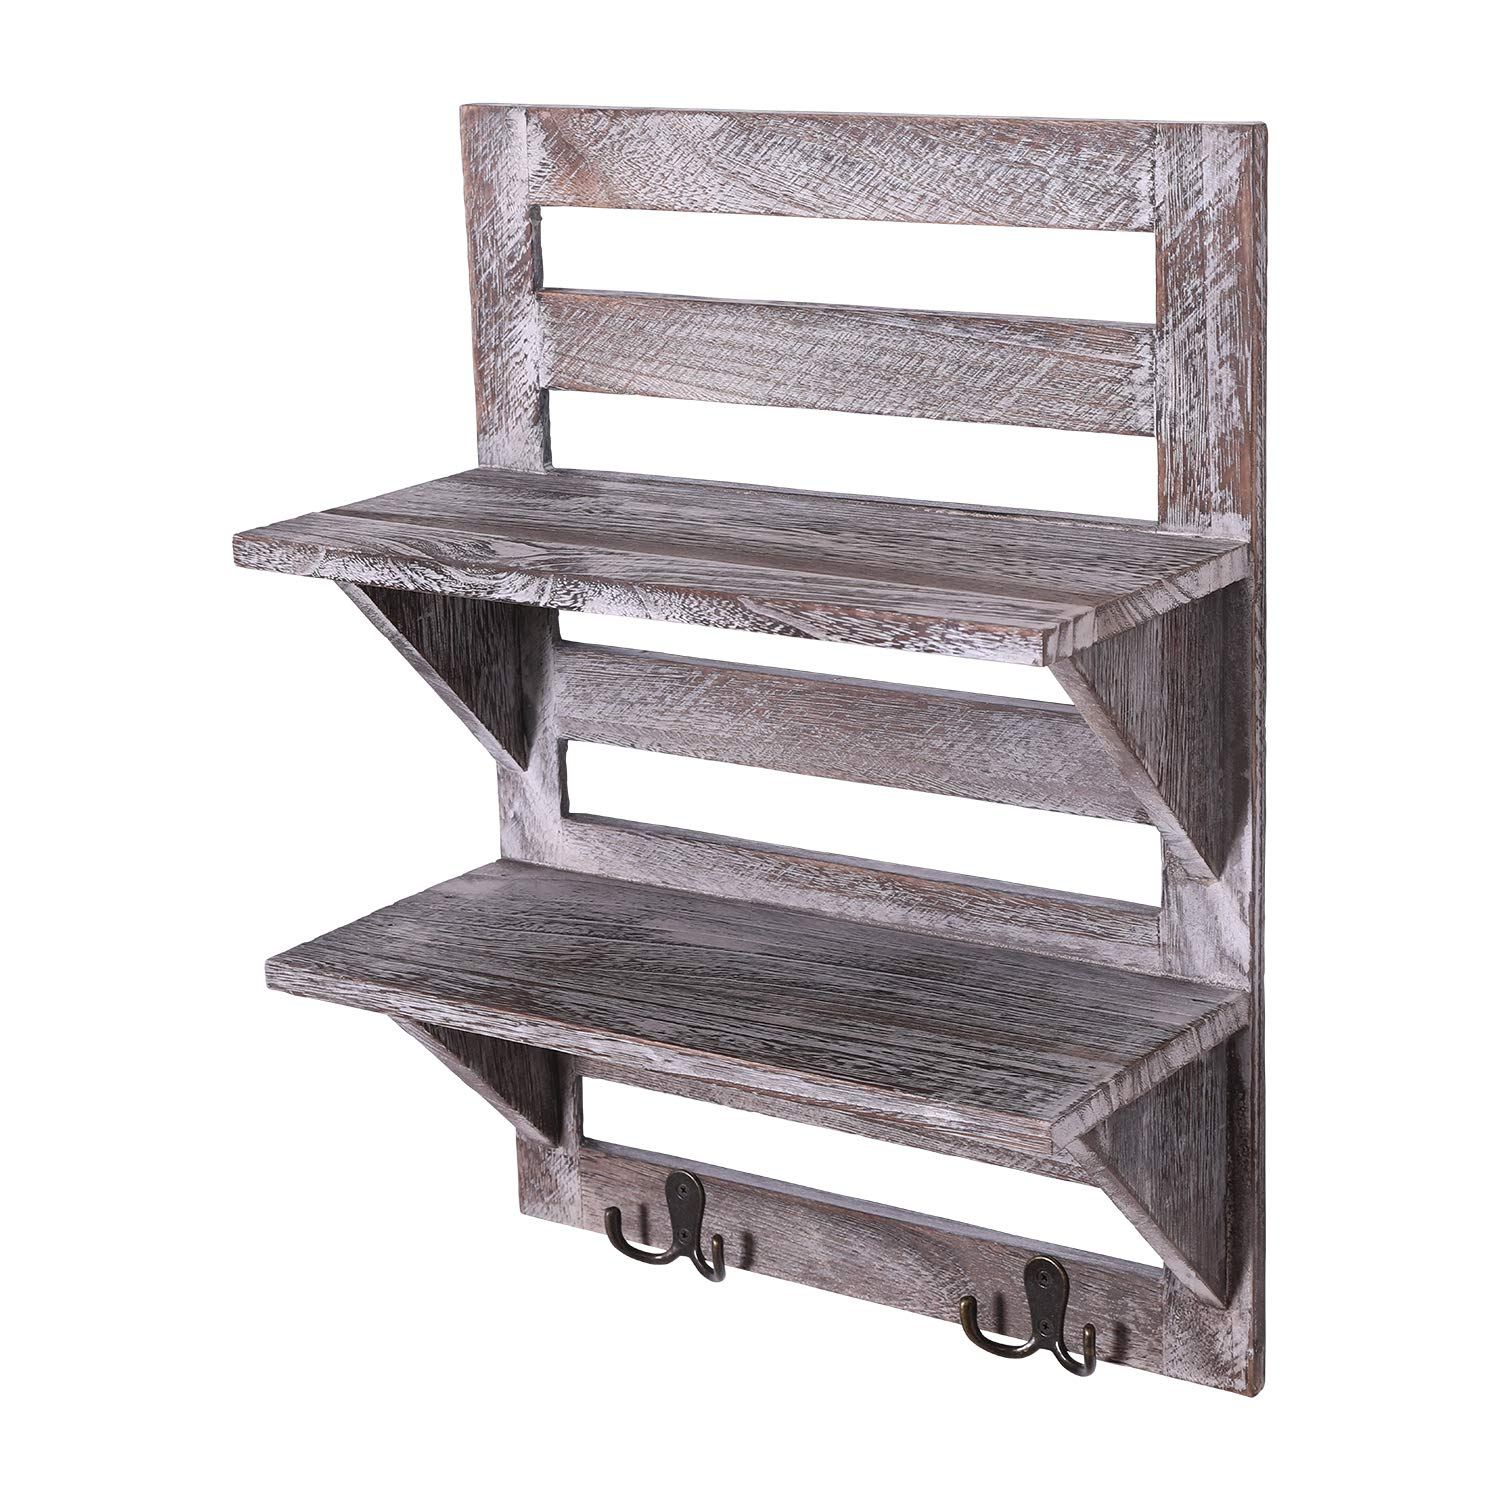 Rustic Wall Mounted Shelves – Kitchen Or Bathroom Farmhouse Rustic Dã©cor –  Vintage Wall Shelves With Two Double Iron Hooks & 2-tier Storage Rack –